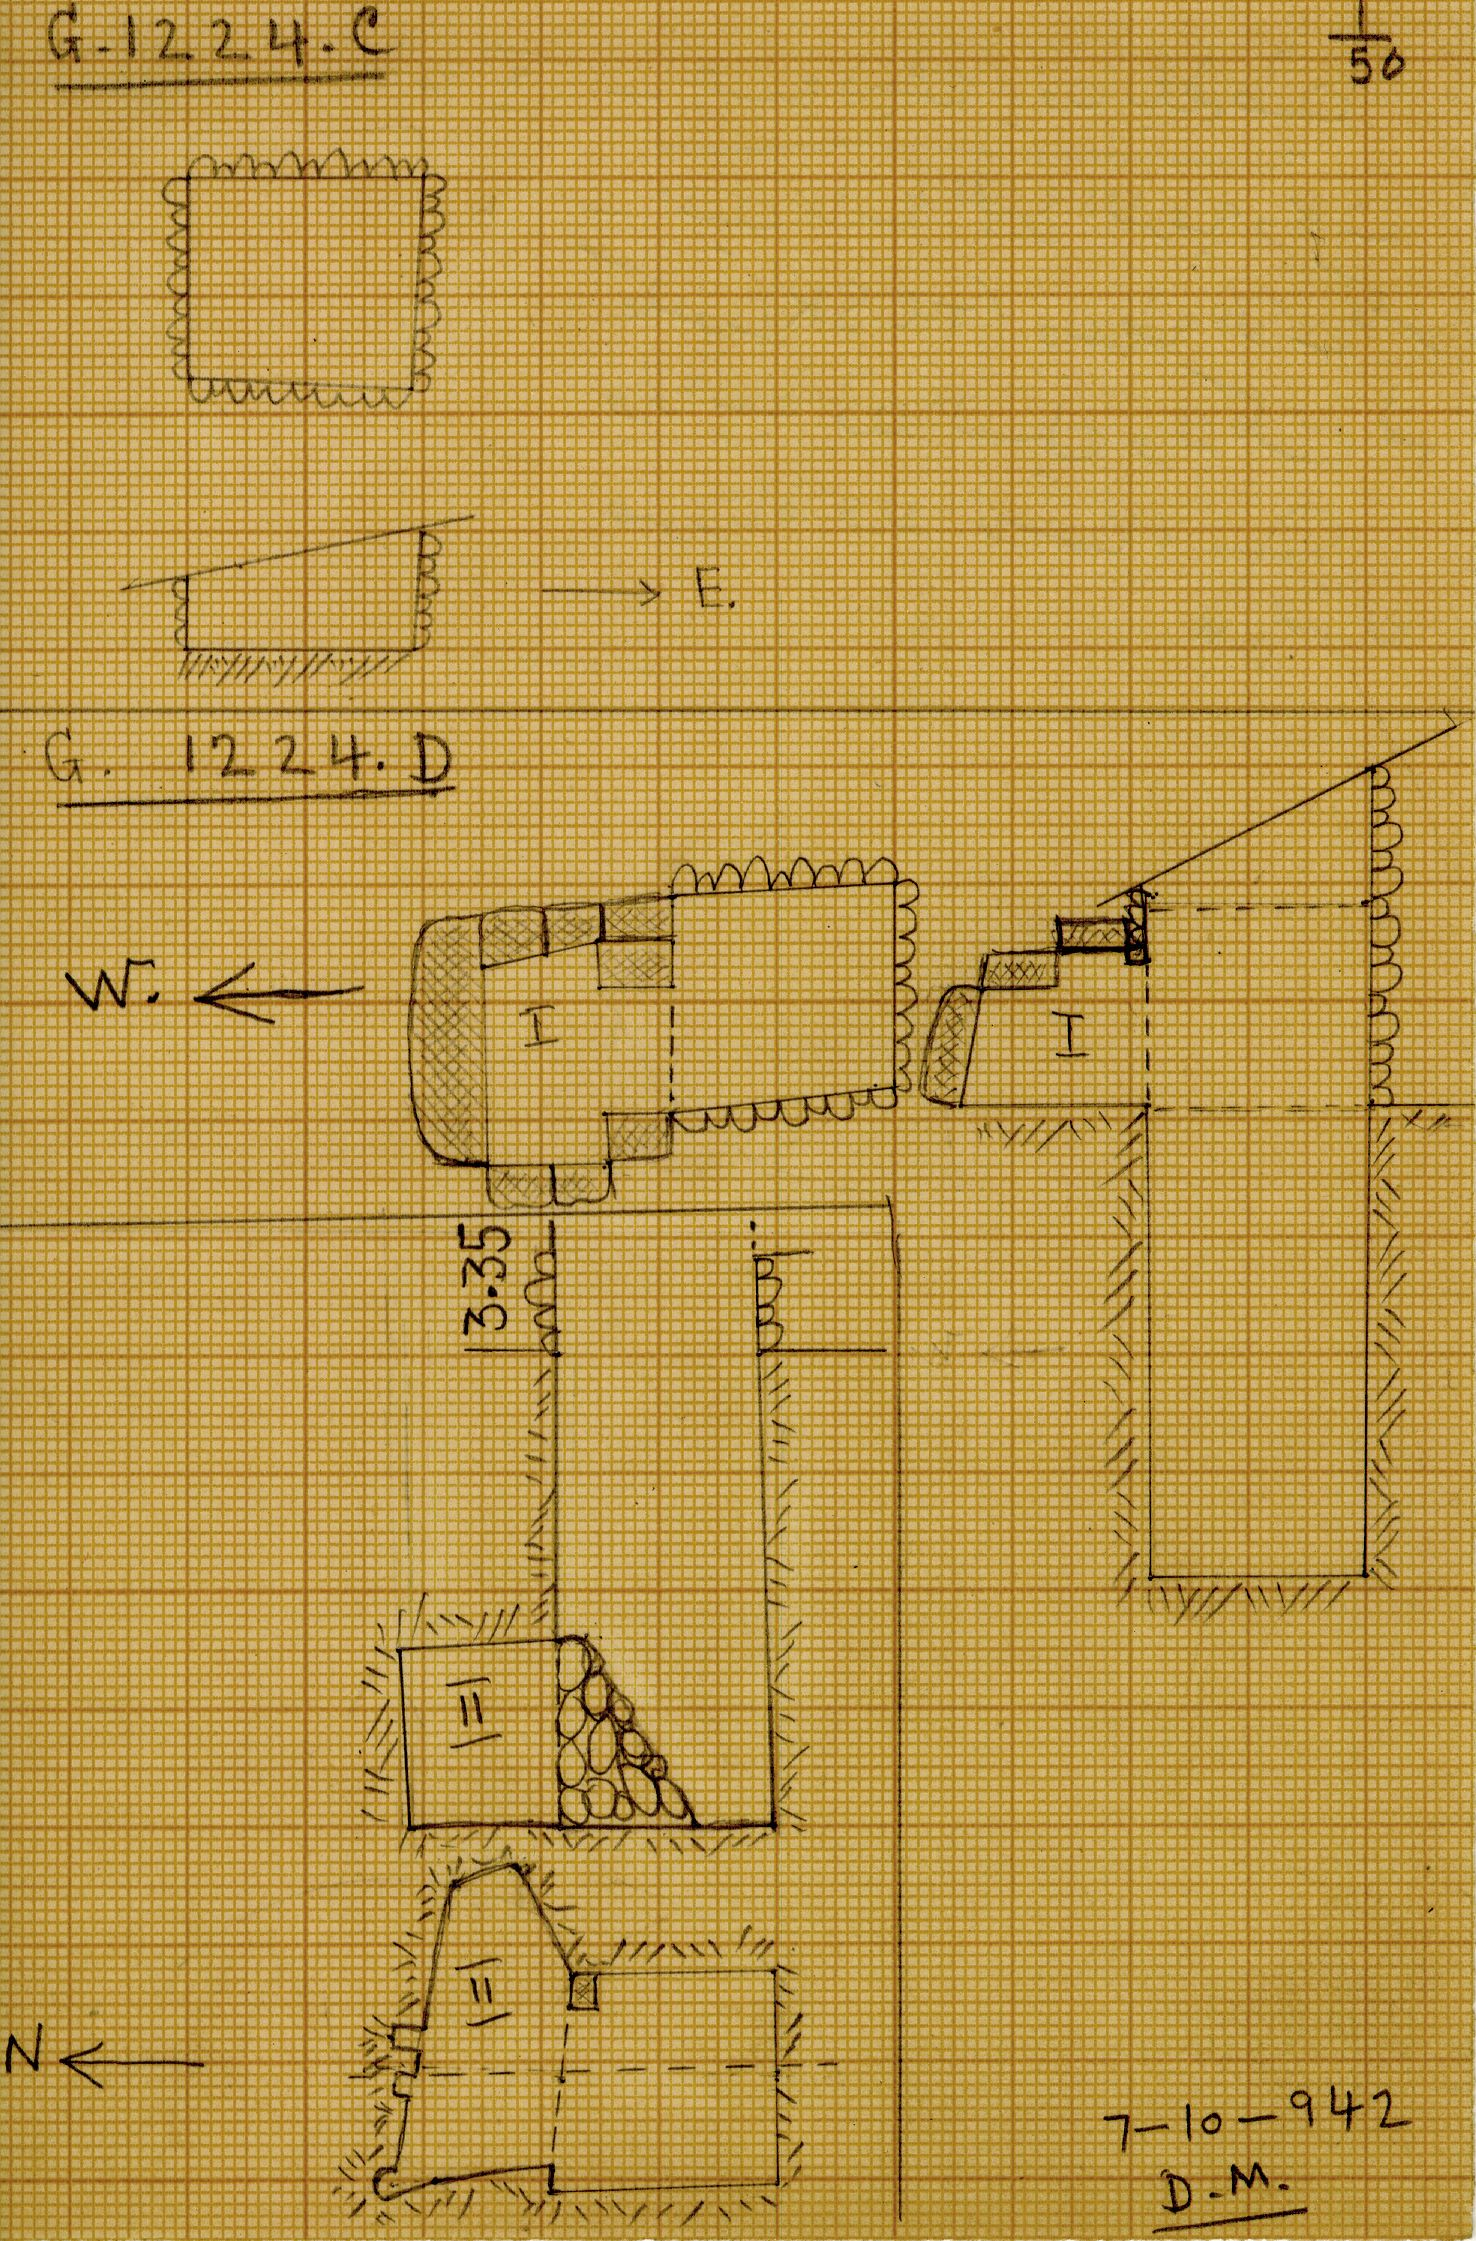 Maps and plans: G 1224+1311: G 1224, Shaft C and D